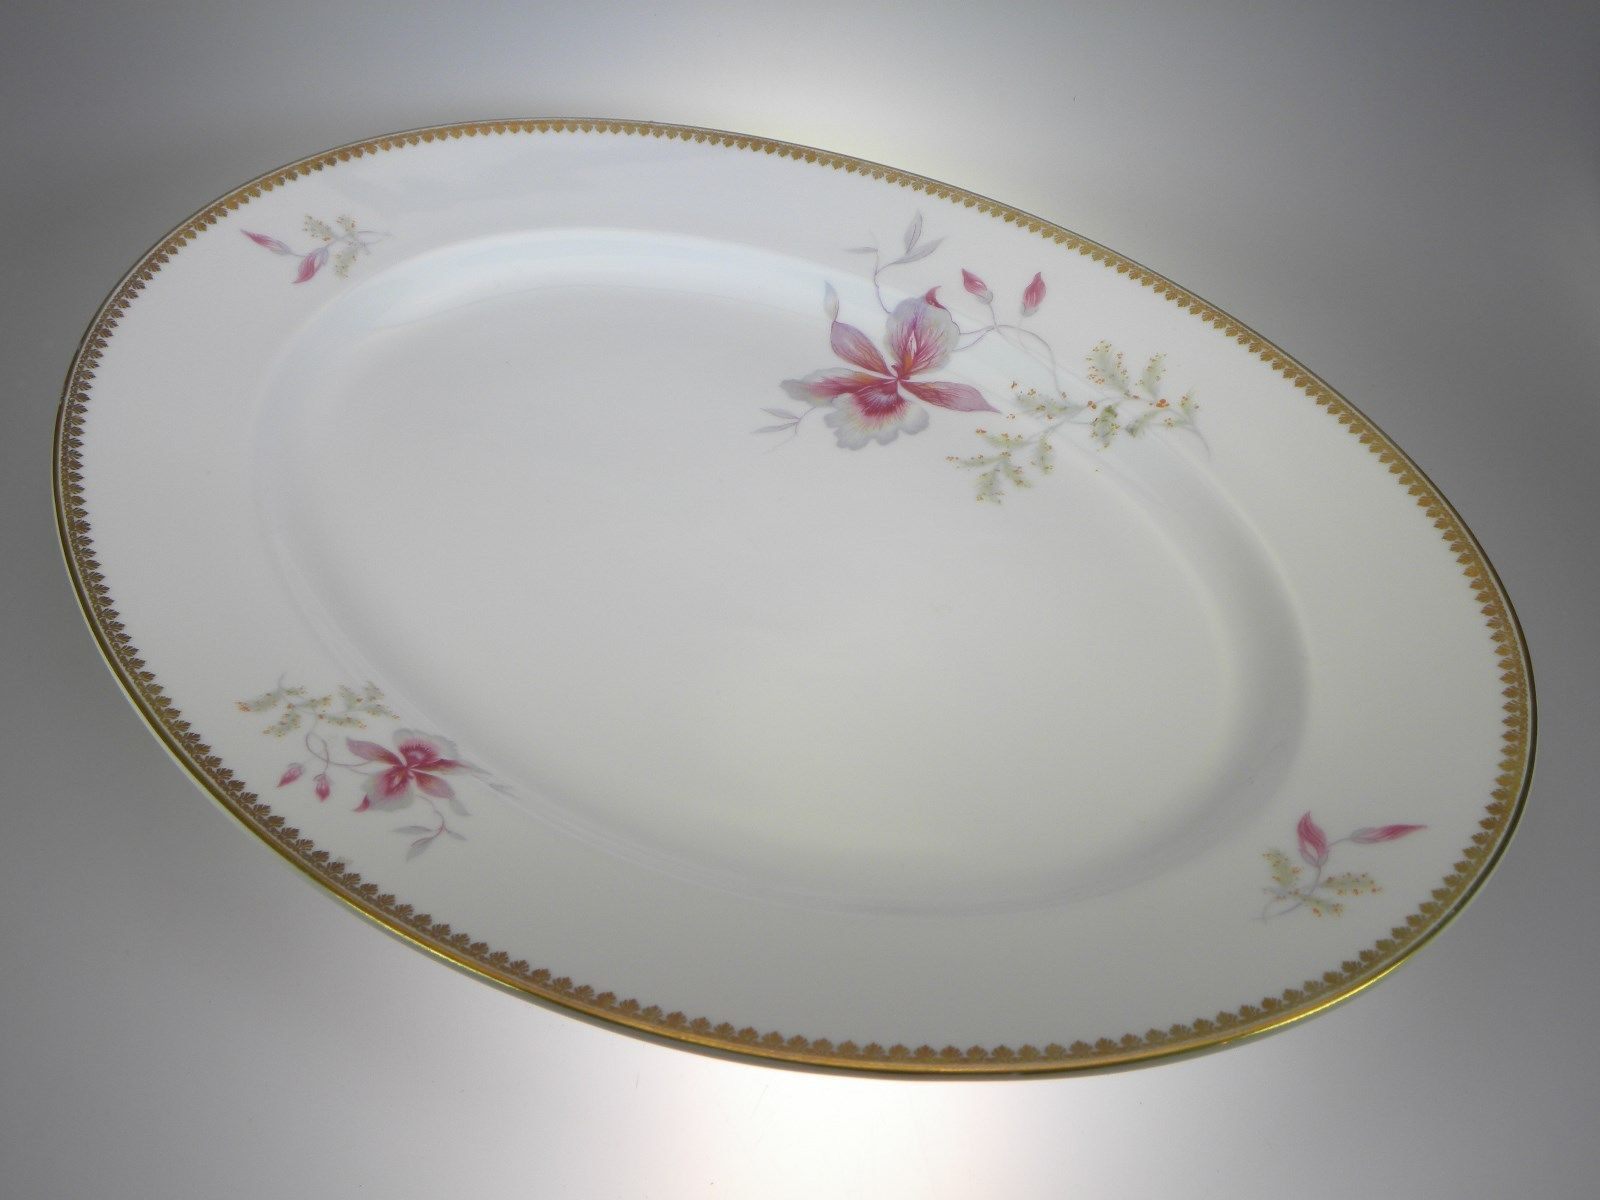 Primary image for Rosenthal Orchid (Aida) Oval Platter 14.75""